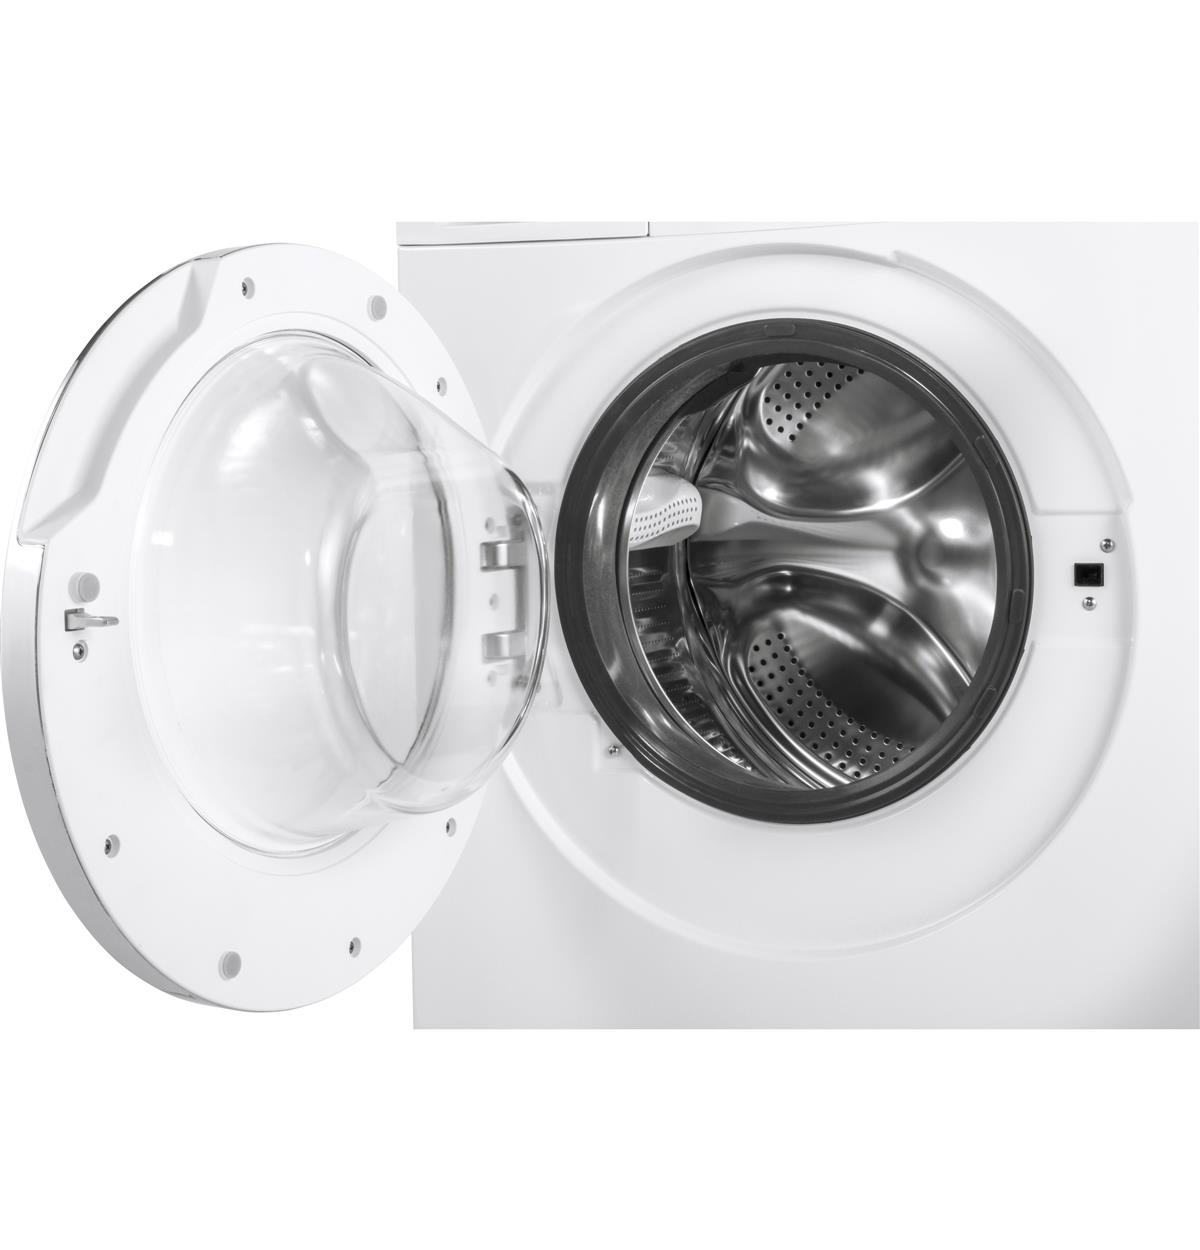 Hlc1700axw 24 Quot 2 0 Cu Ft Front Load Washer Dryer Combo